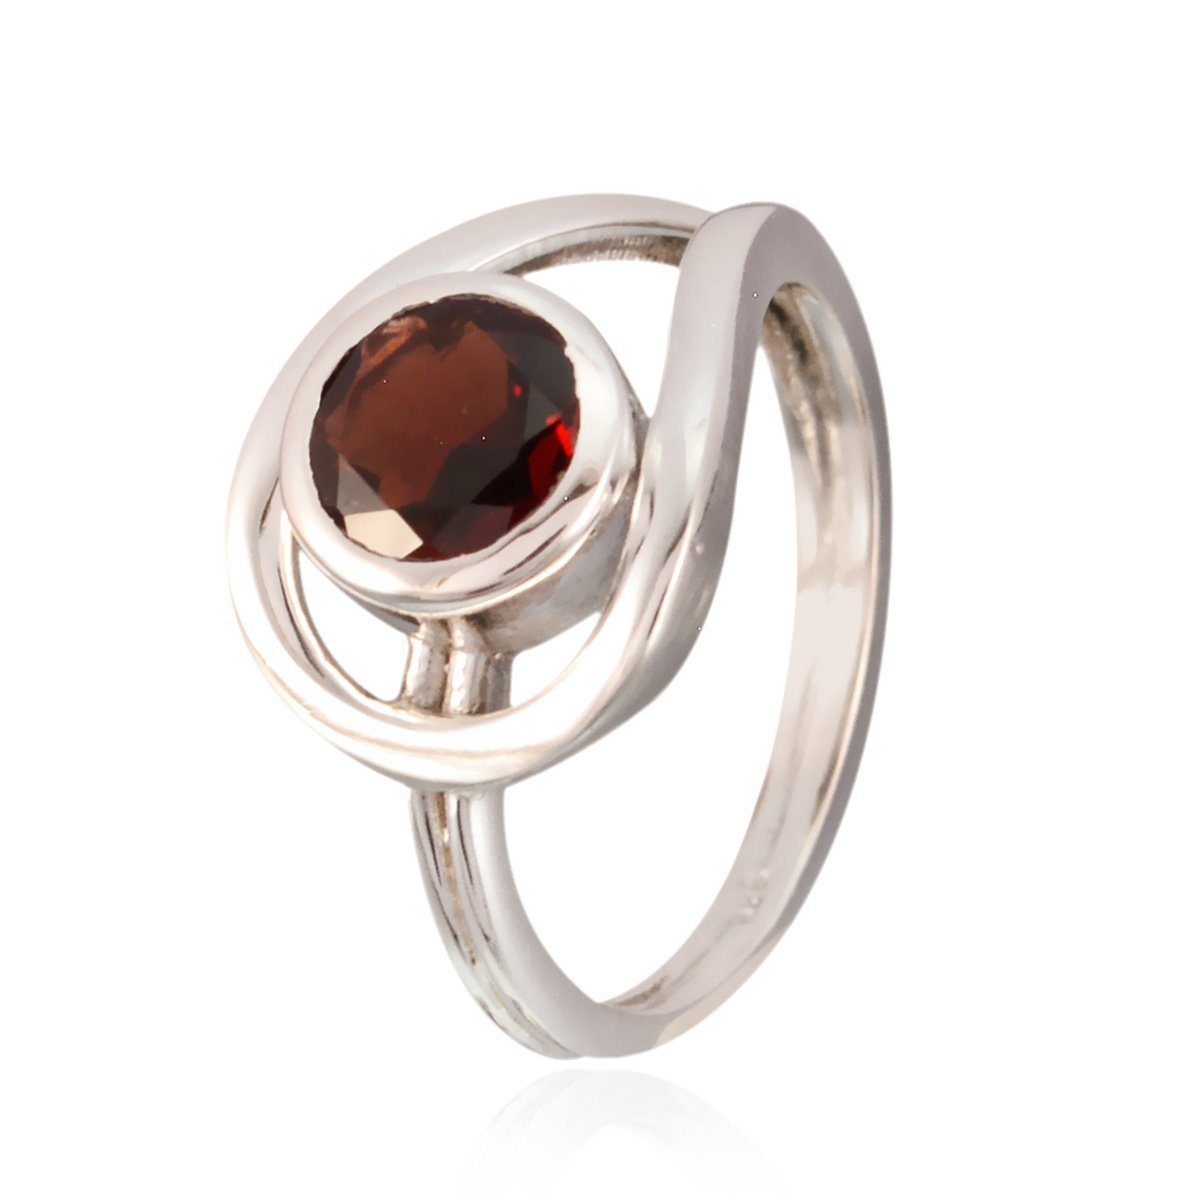 Nice Gemstone Round Faceted Garnets Rings - Solid Silber Red Garnets Nice Gemstone Ring - Supply Jewelry top Selling Shops Gift for Teachers Day Modern Stacking Ring -US 14.5 by RGPL (Image #3)